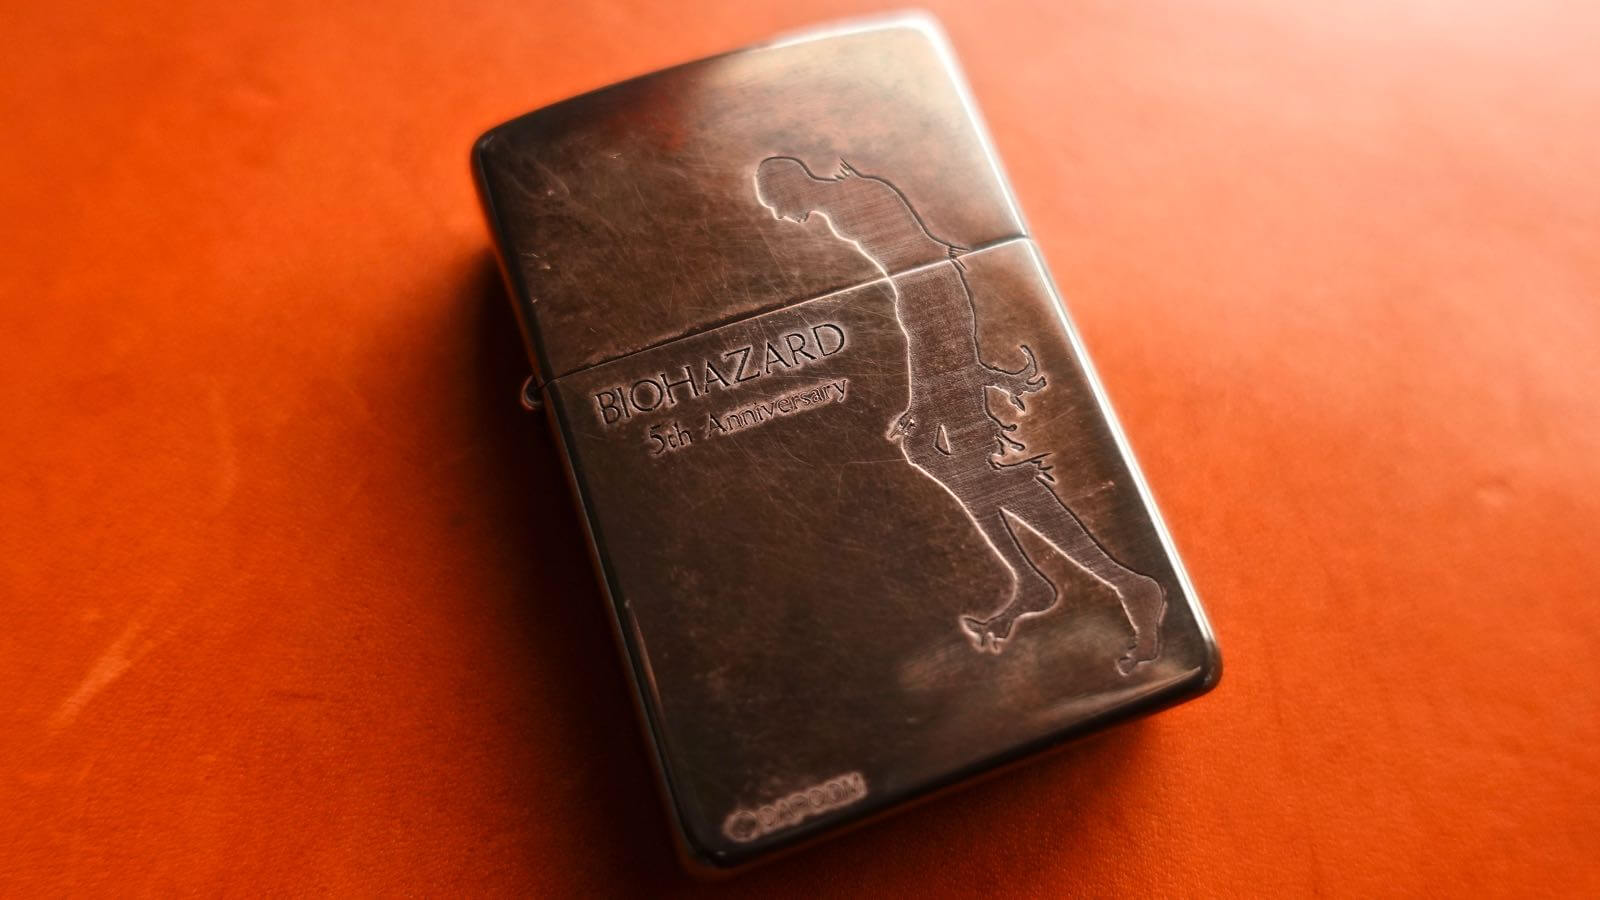 0012 Baiohazad 5th anniversary zippo collaboration 03